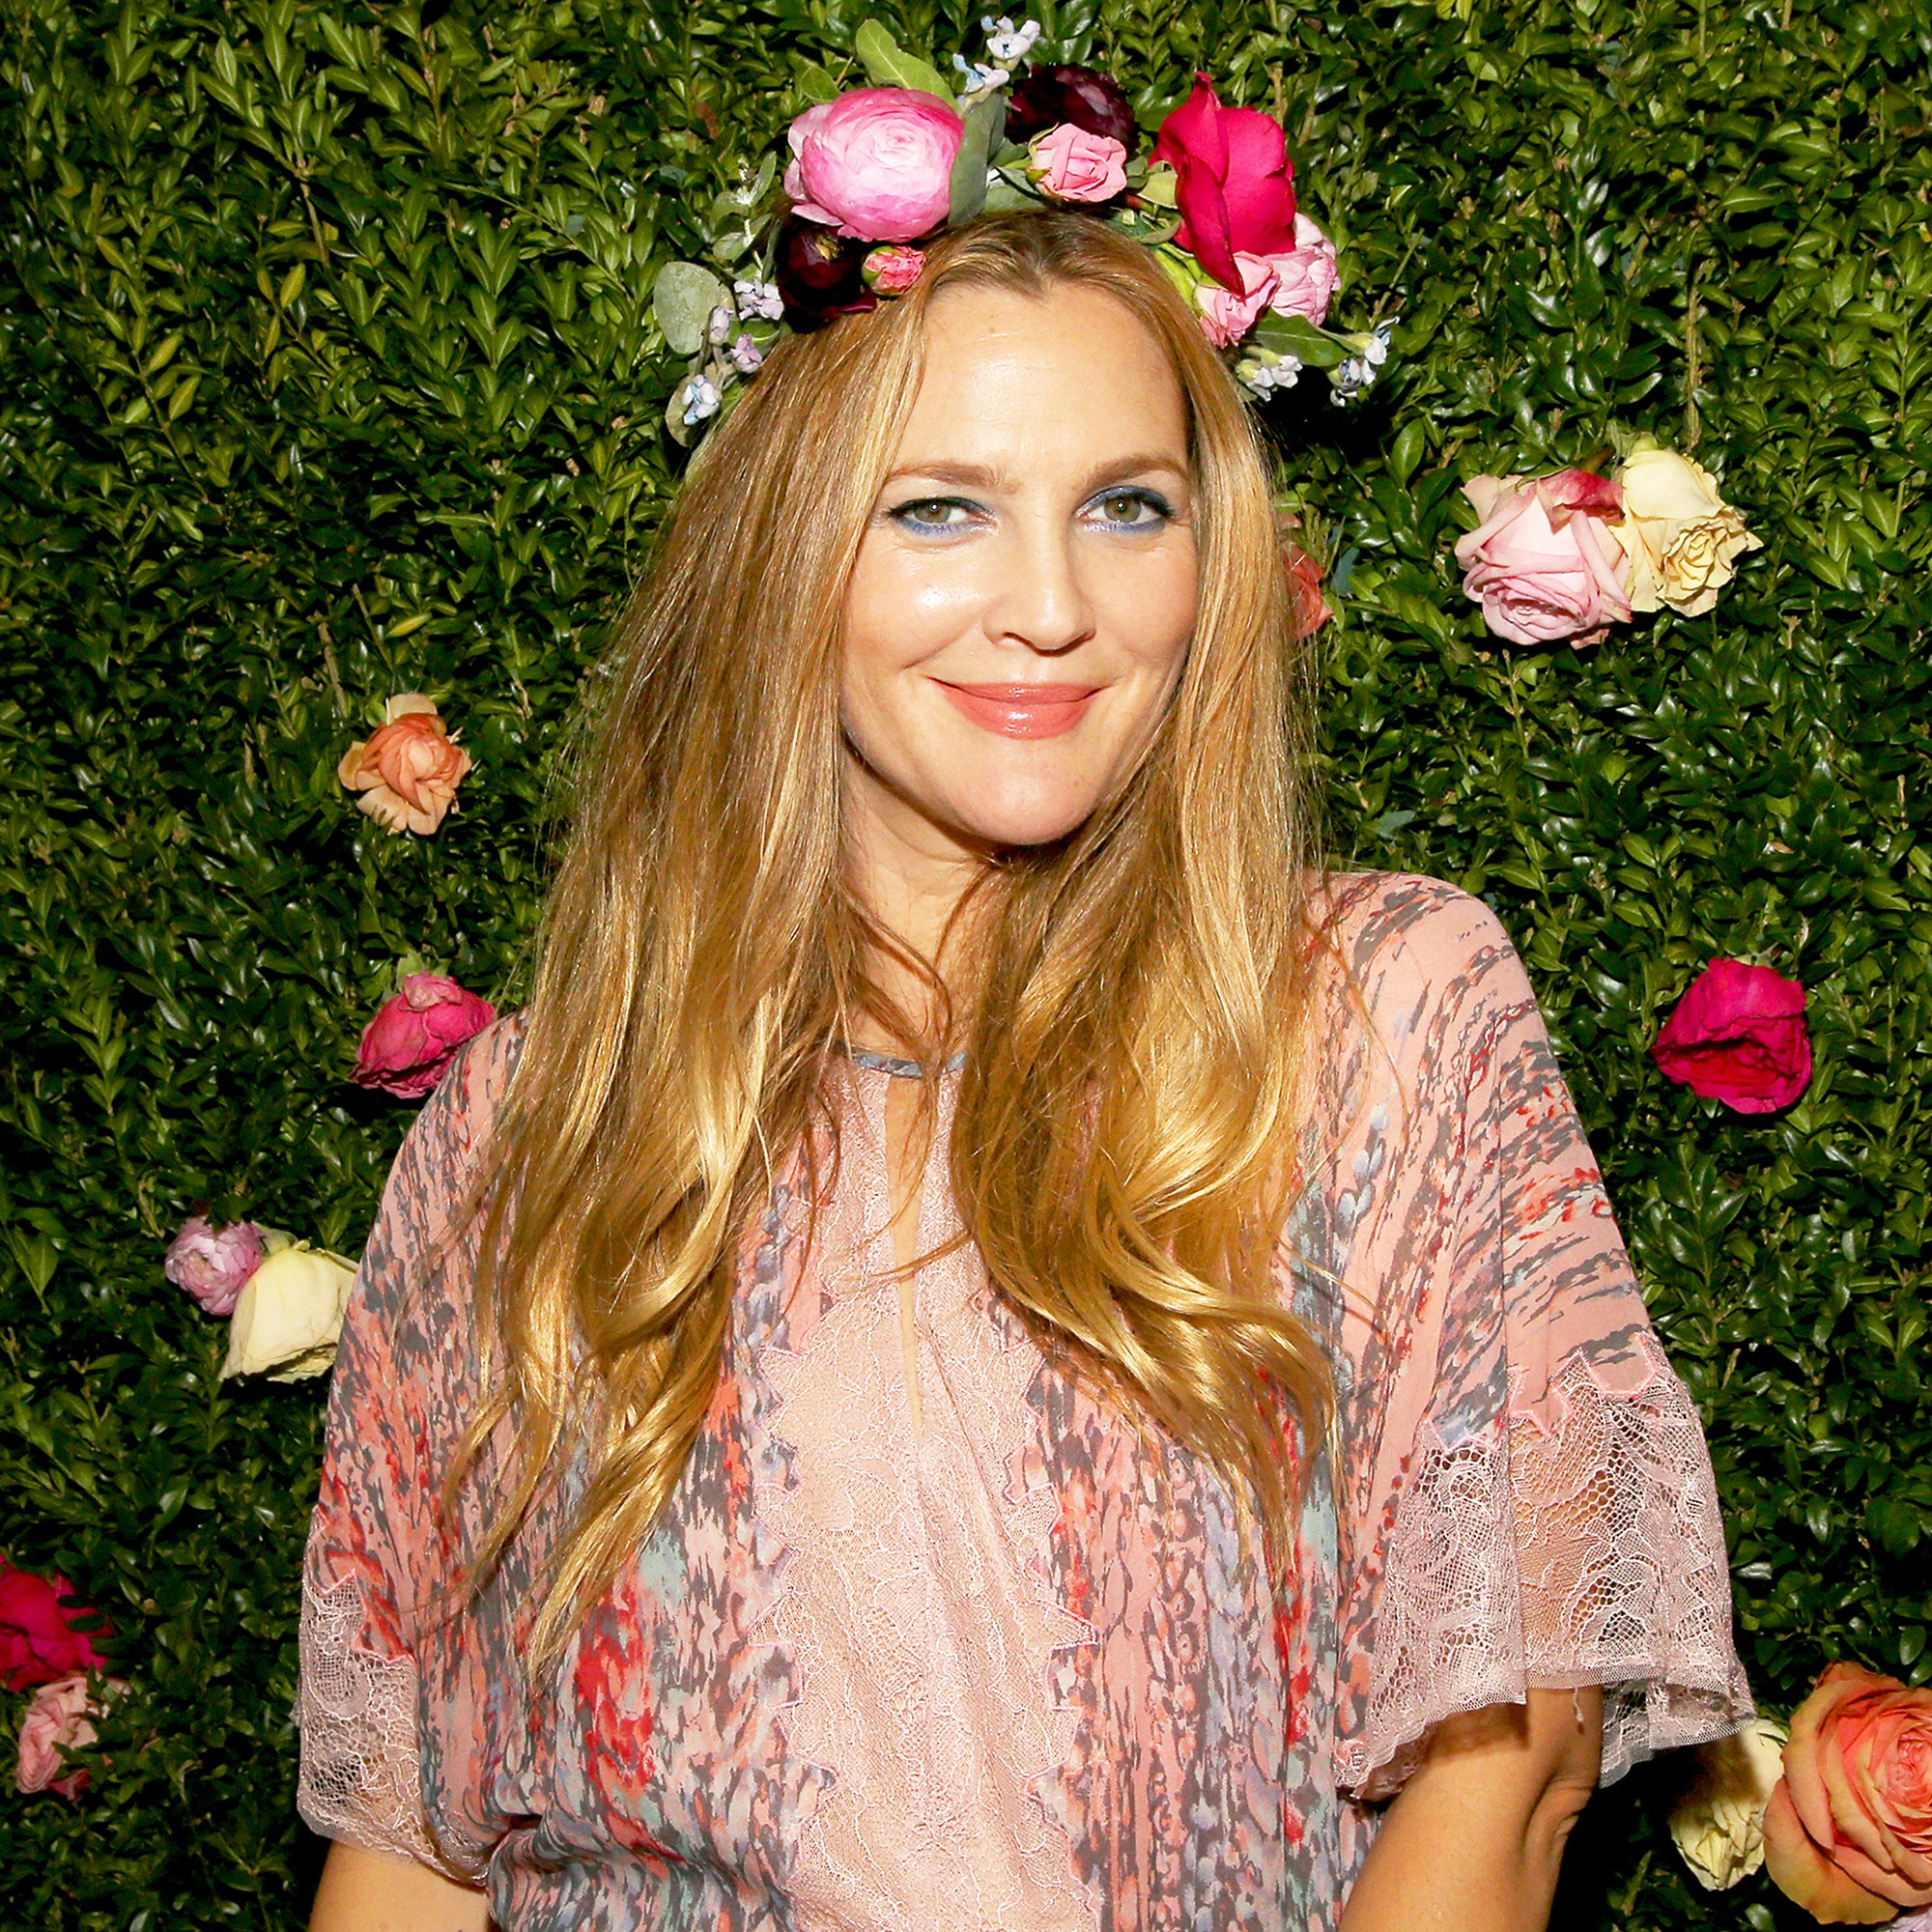 Drew Barrymore attends the 3rd Annual Beautycon Festival New York at Pier 36 in New York City.